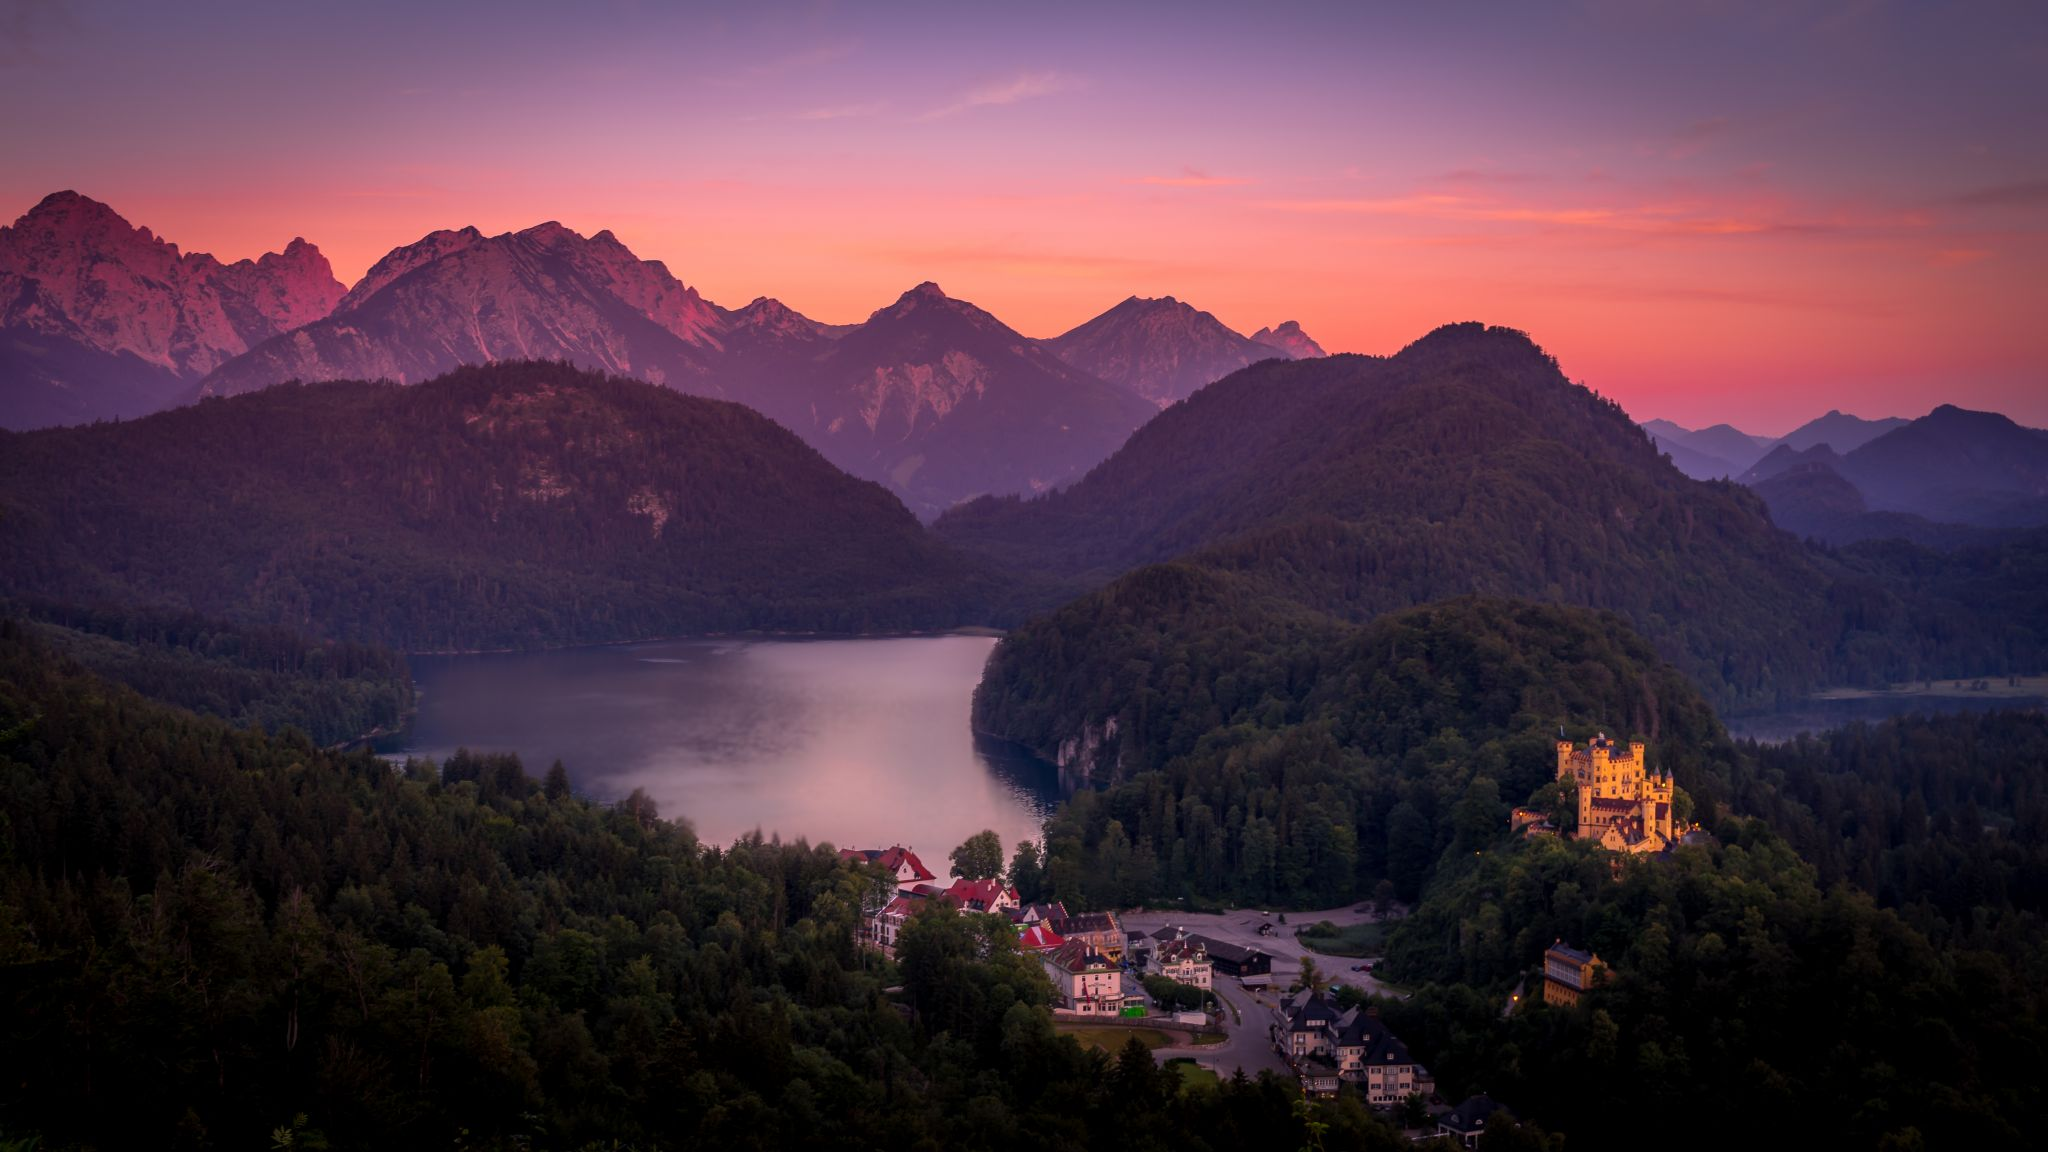 View on the Alpsee from Neuschwanstein, Germany